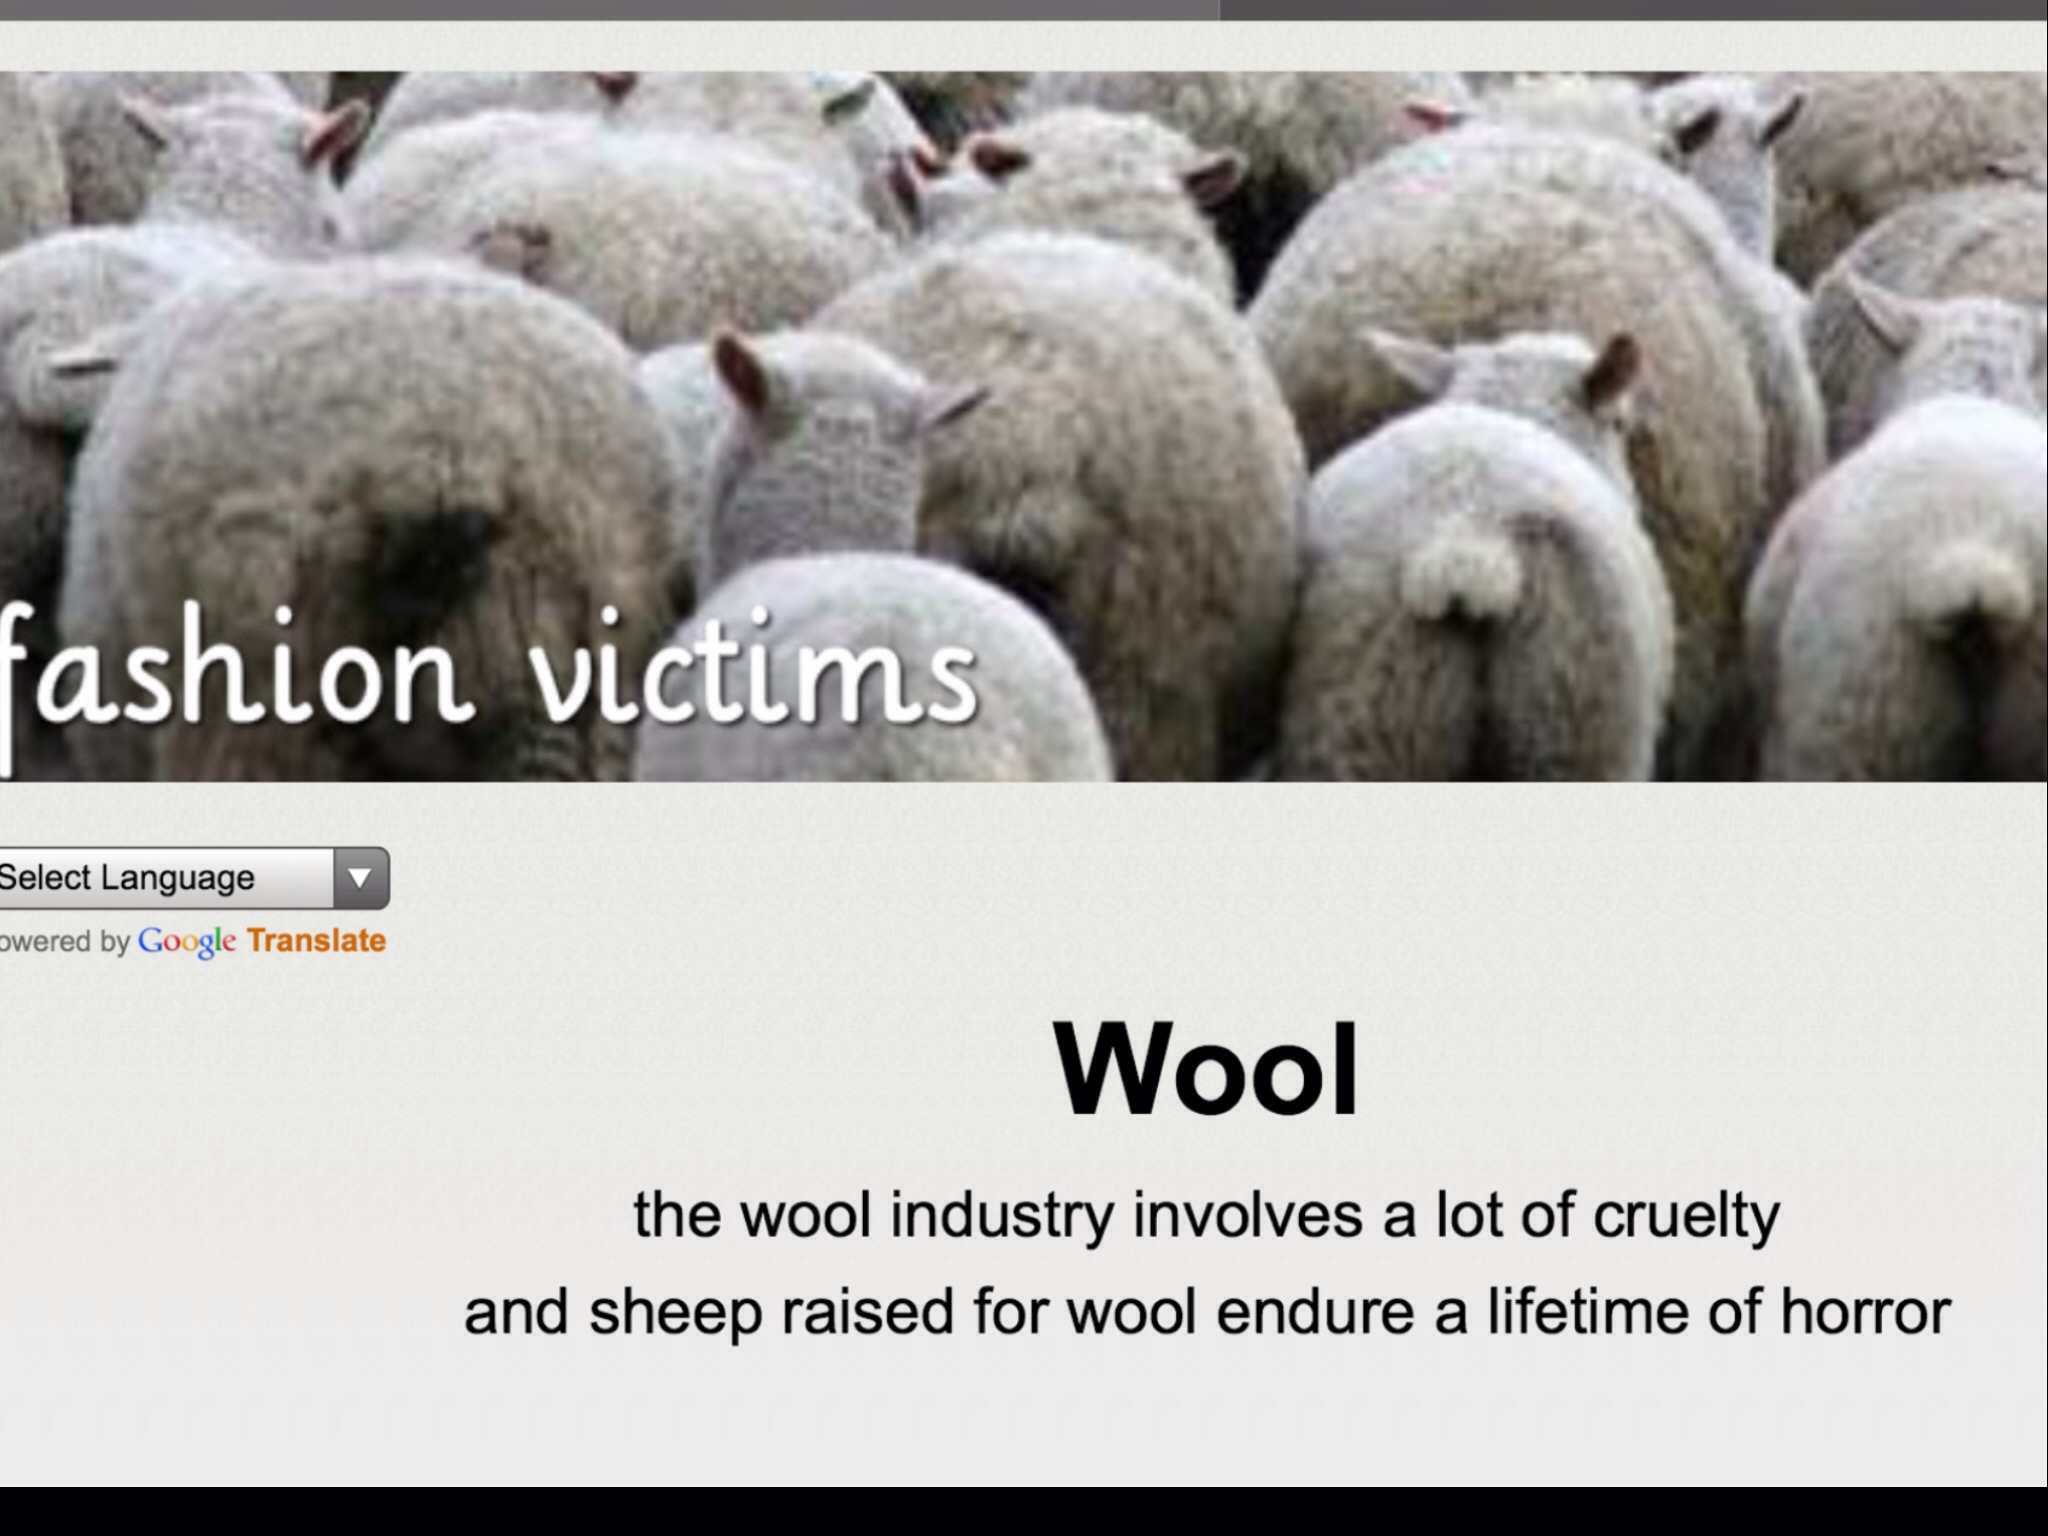 pulling the wool essay Free essay on the most successful early roman emperors available totally free at echeatcom, the largest free essay community new to pulling the wool over.